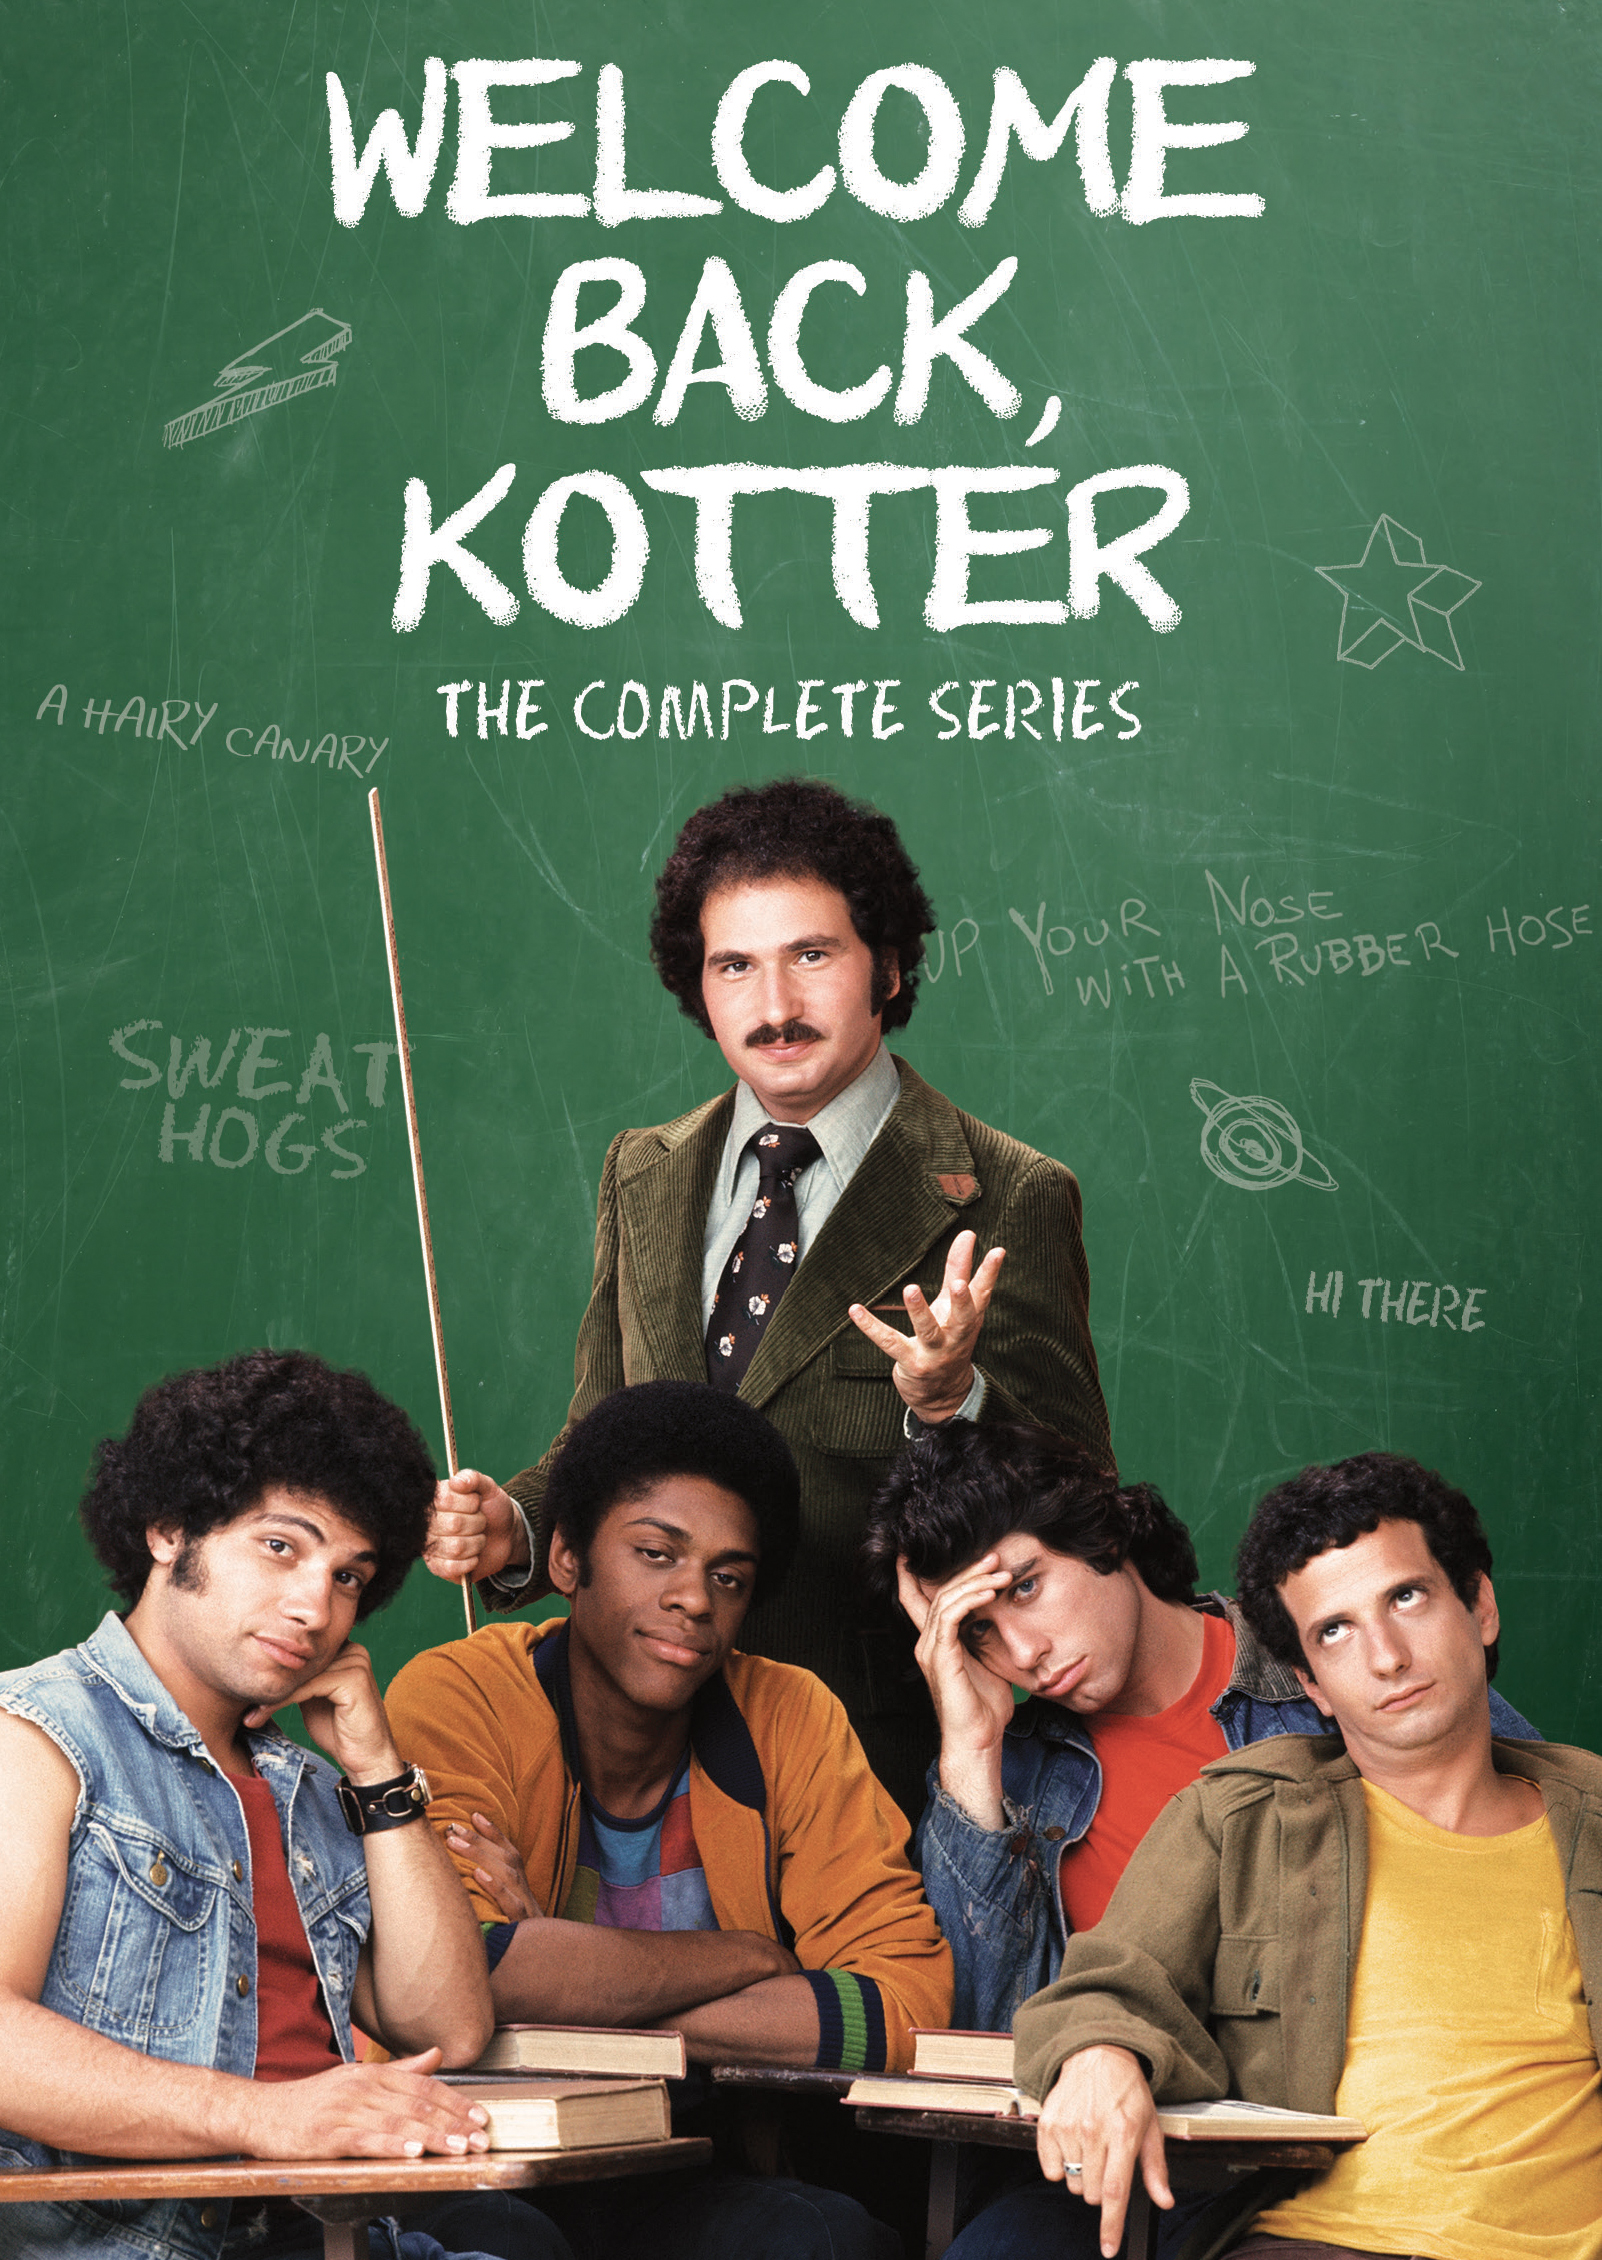 language show 3 15 85 with los angeles welcome back kotter the complete series shout factory